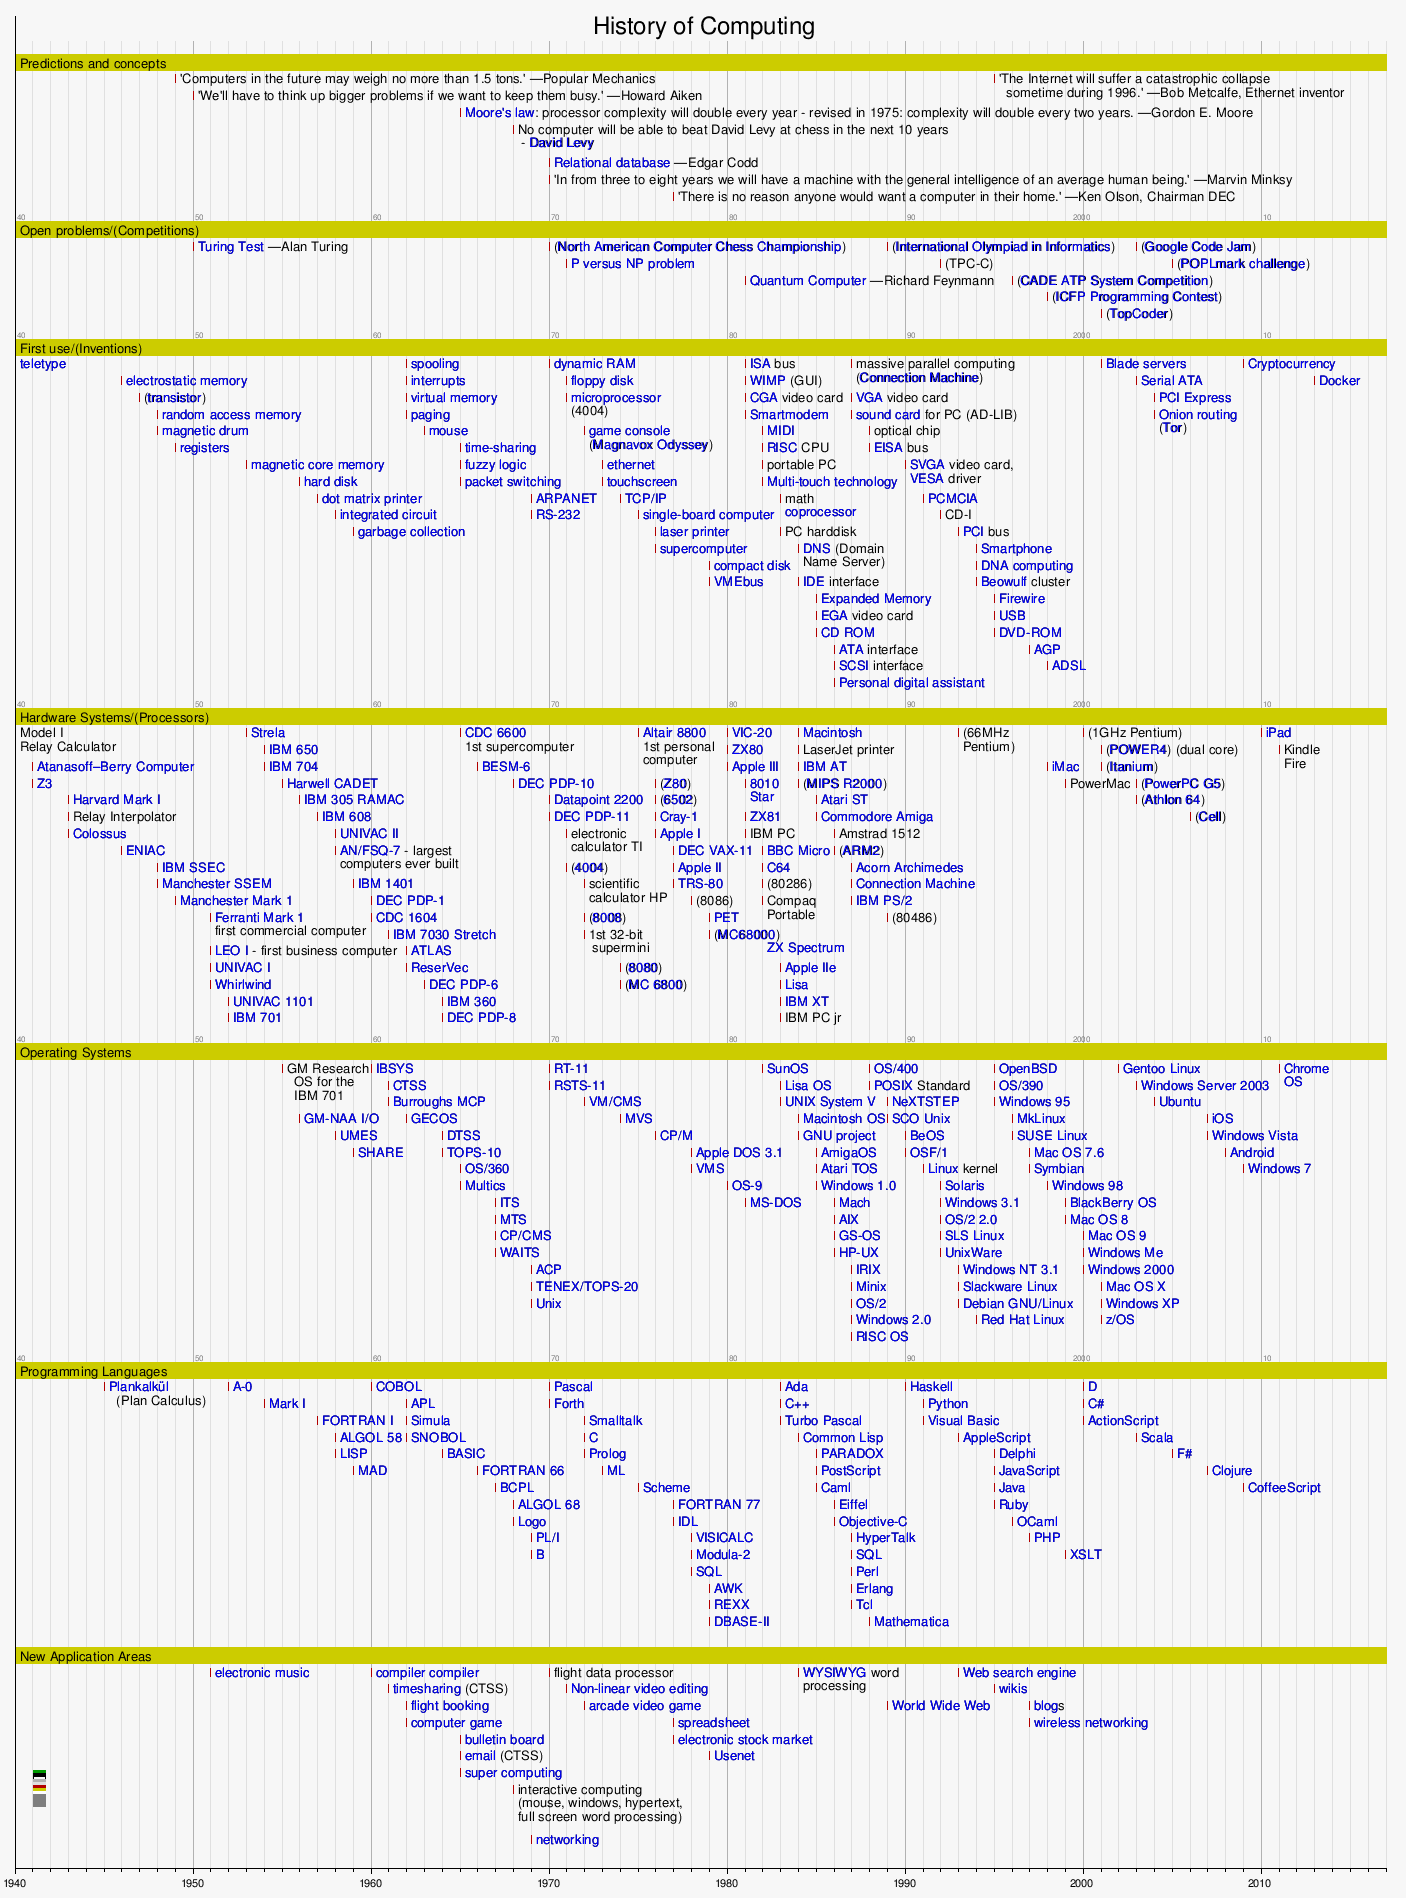 TemplateTimeline History of Computing Wikipedia – History Timeline Template